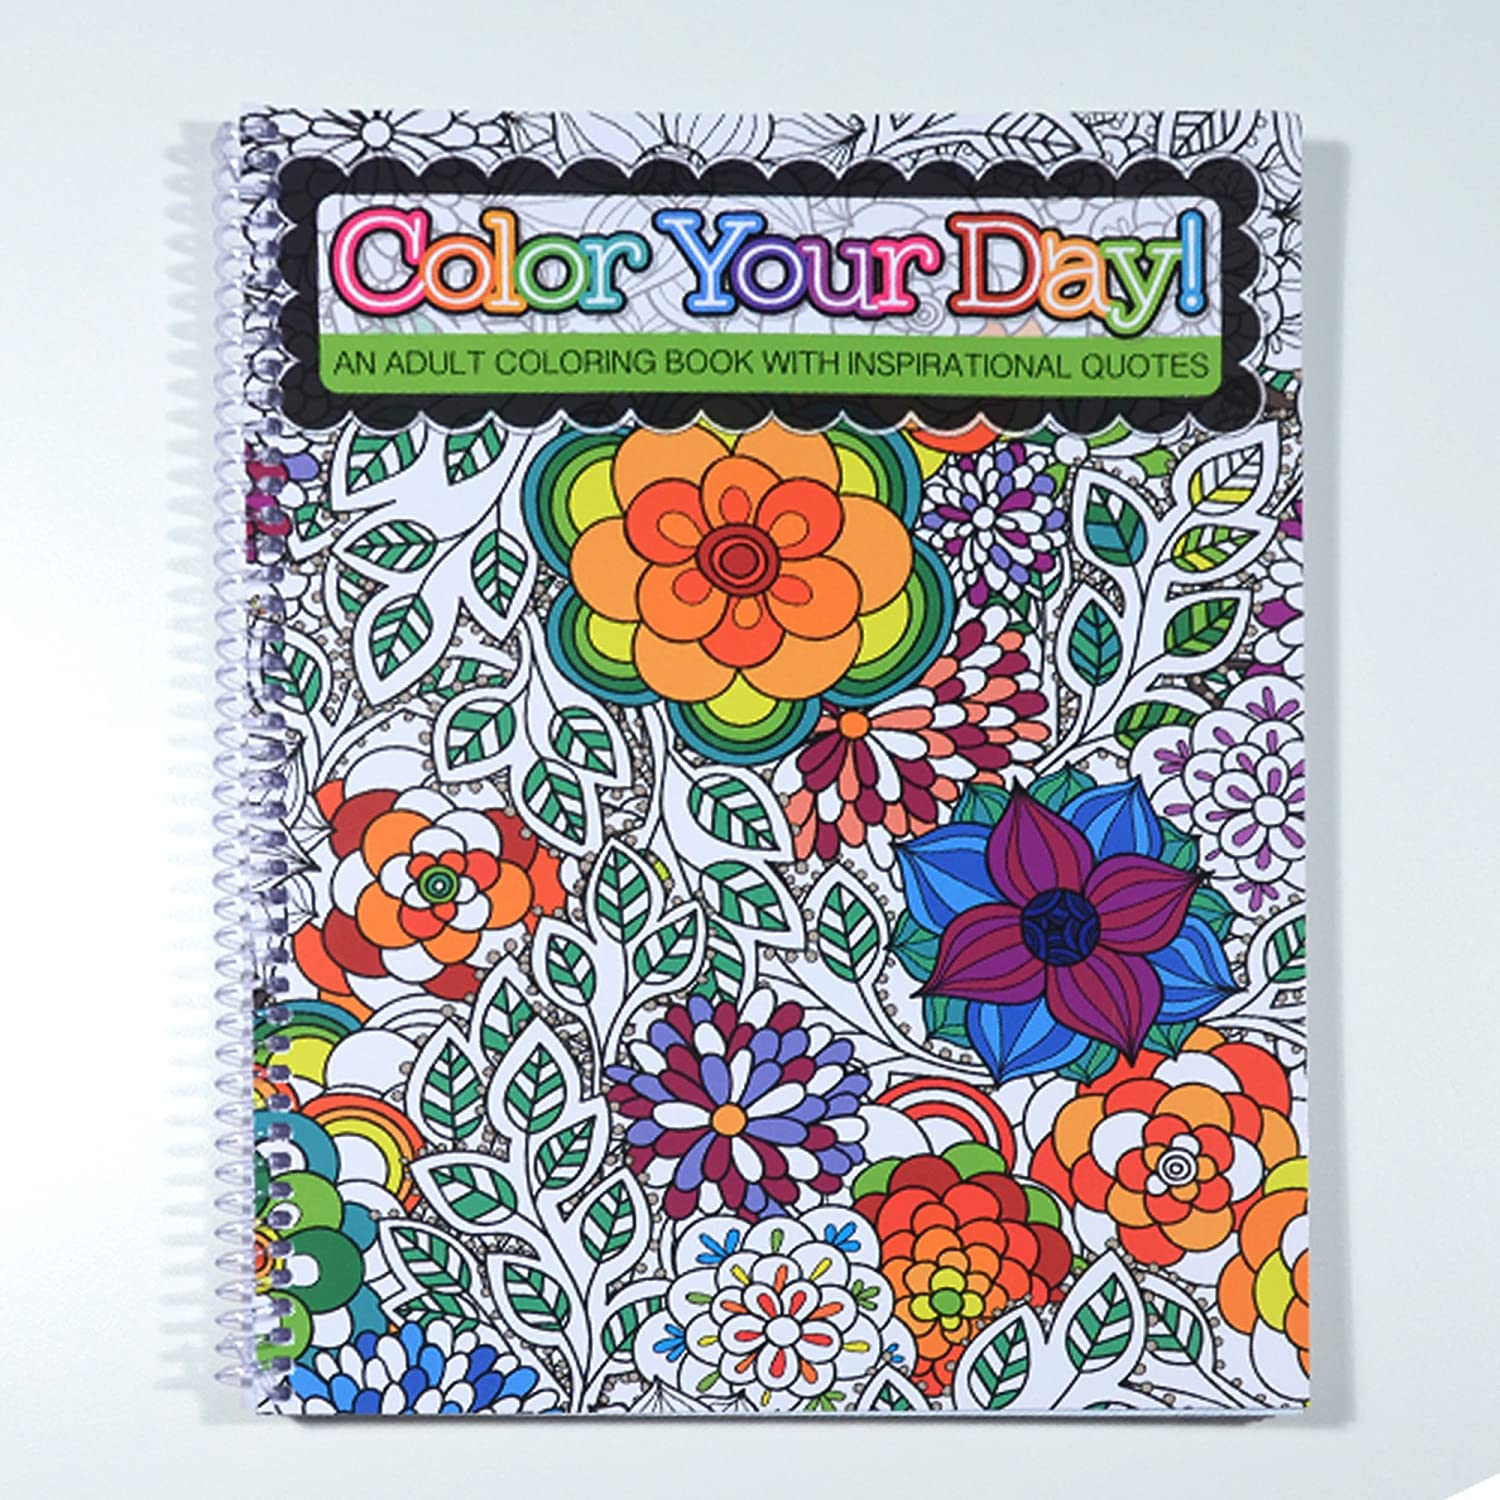 """School Datebooks Color Your Day! - an Adult Coloring Book with Inspirational Quotes - Spiral Bound - 8.5"""" x 11"""""""